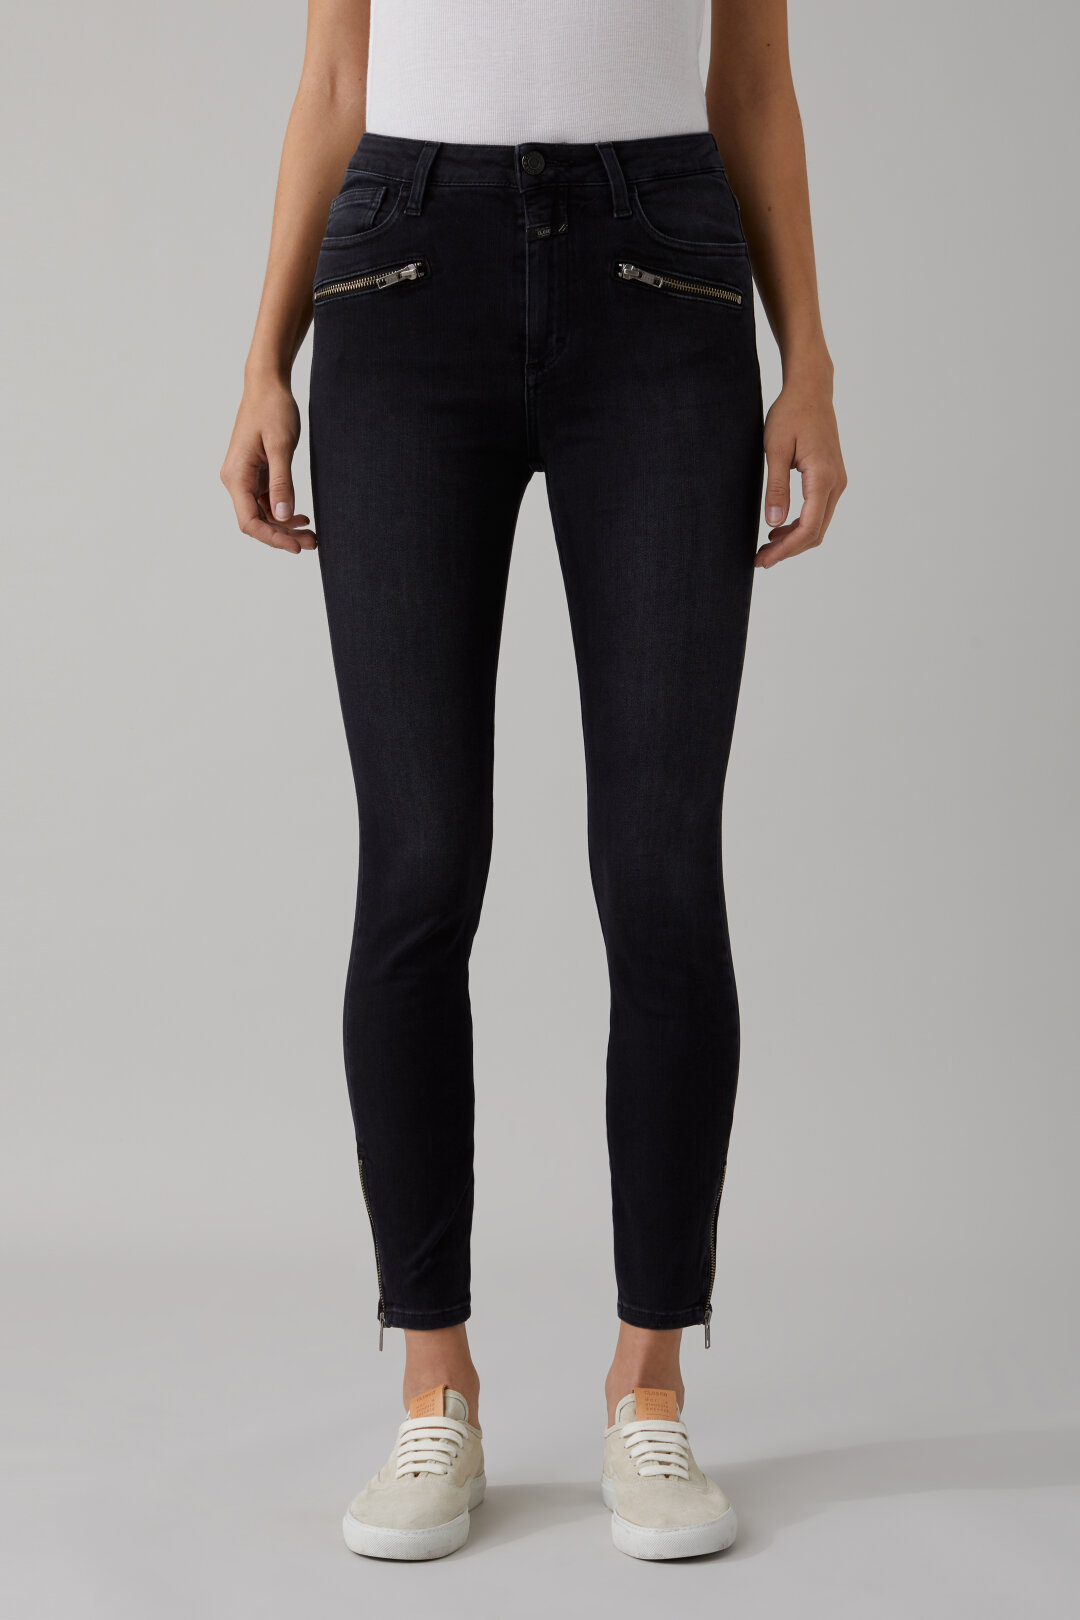 Aimie Black Power Stretch Denim